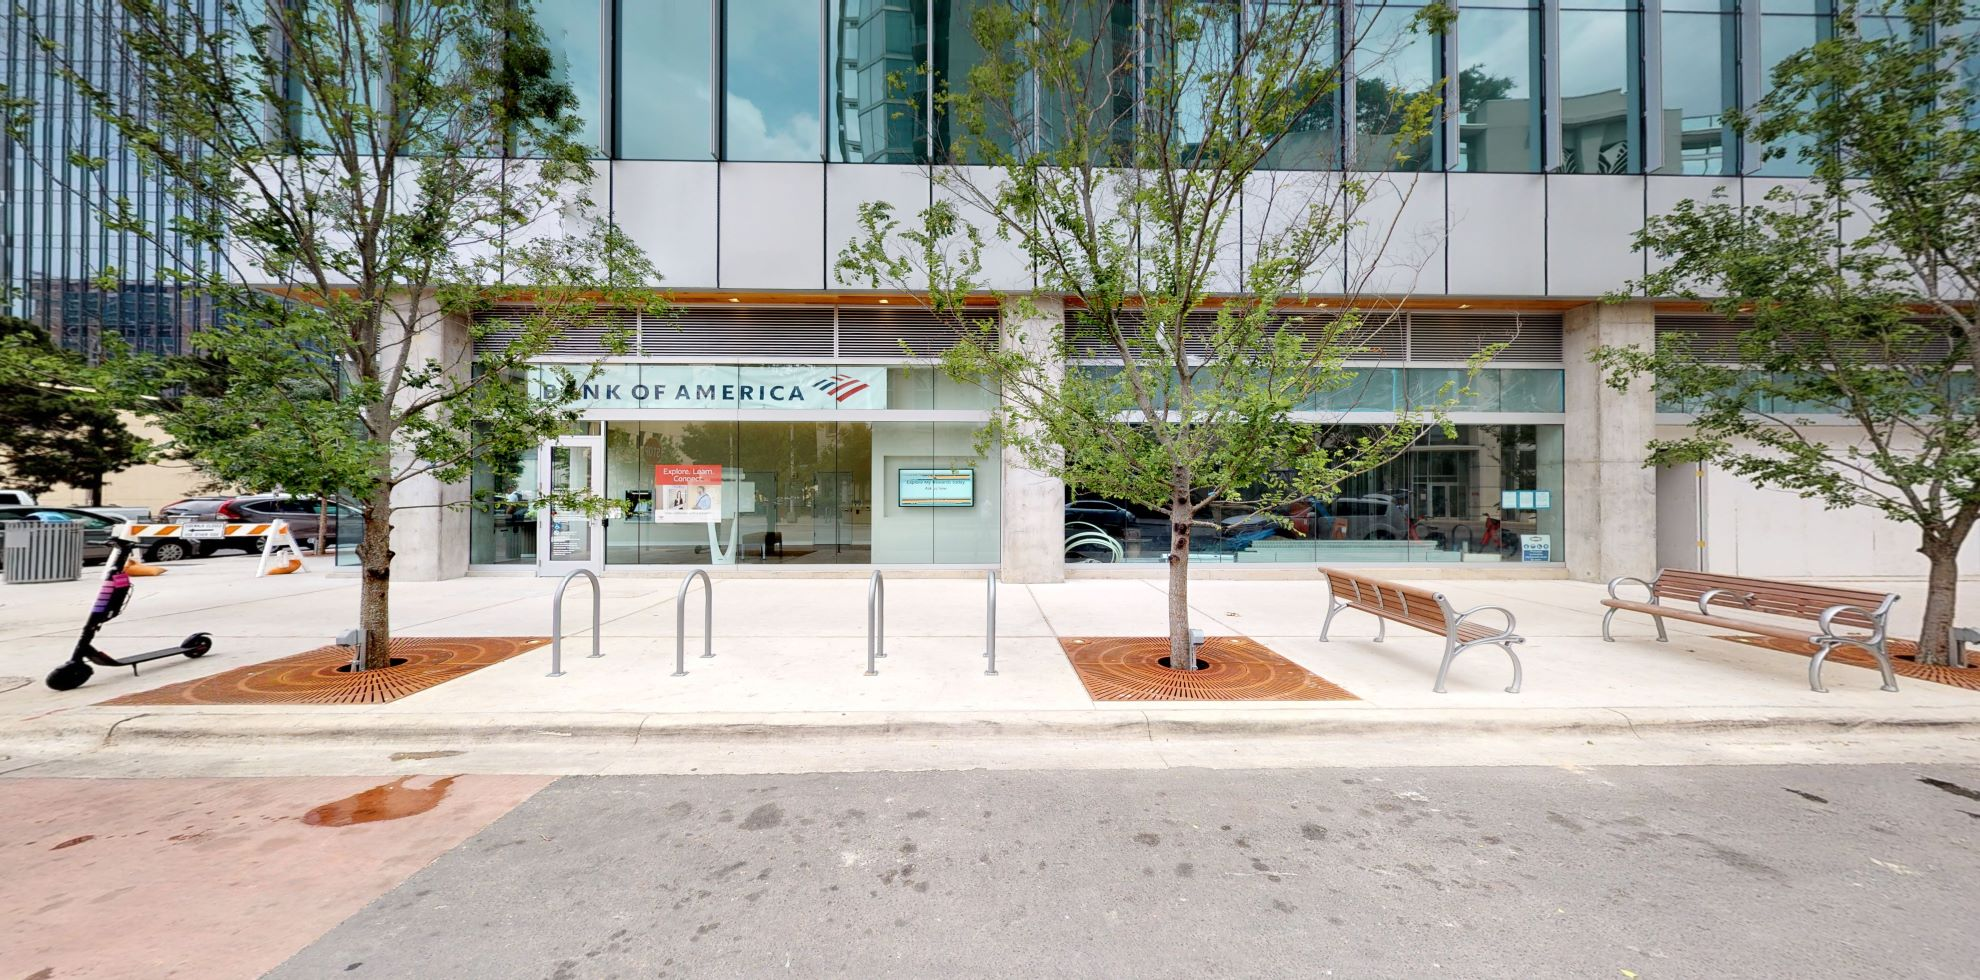 Bank of America Advanced Center with walk-up ATM | 607 W 3rd St, Austin, TX 78701